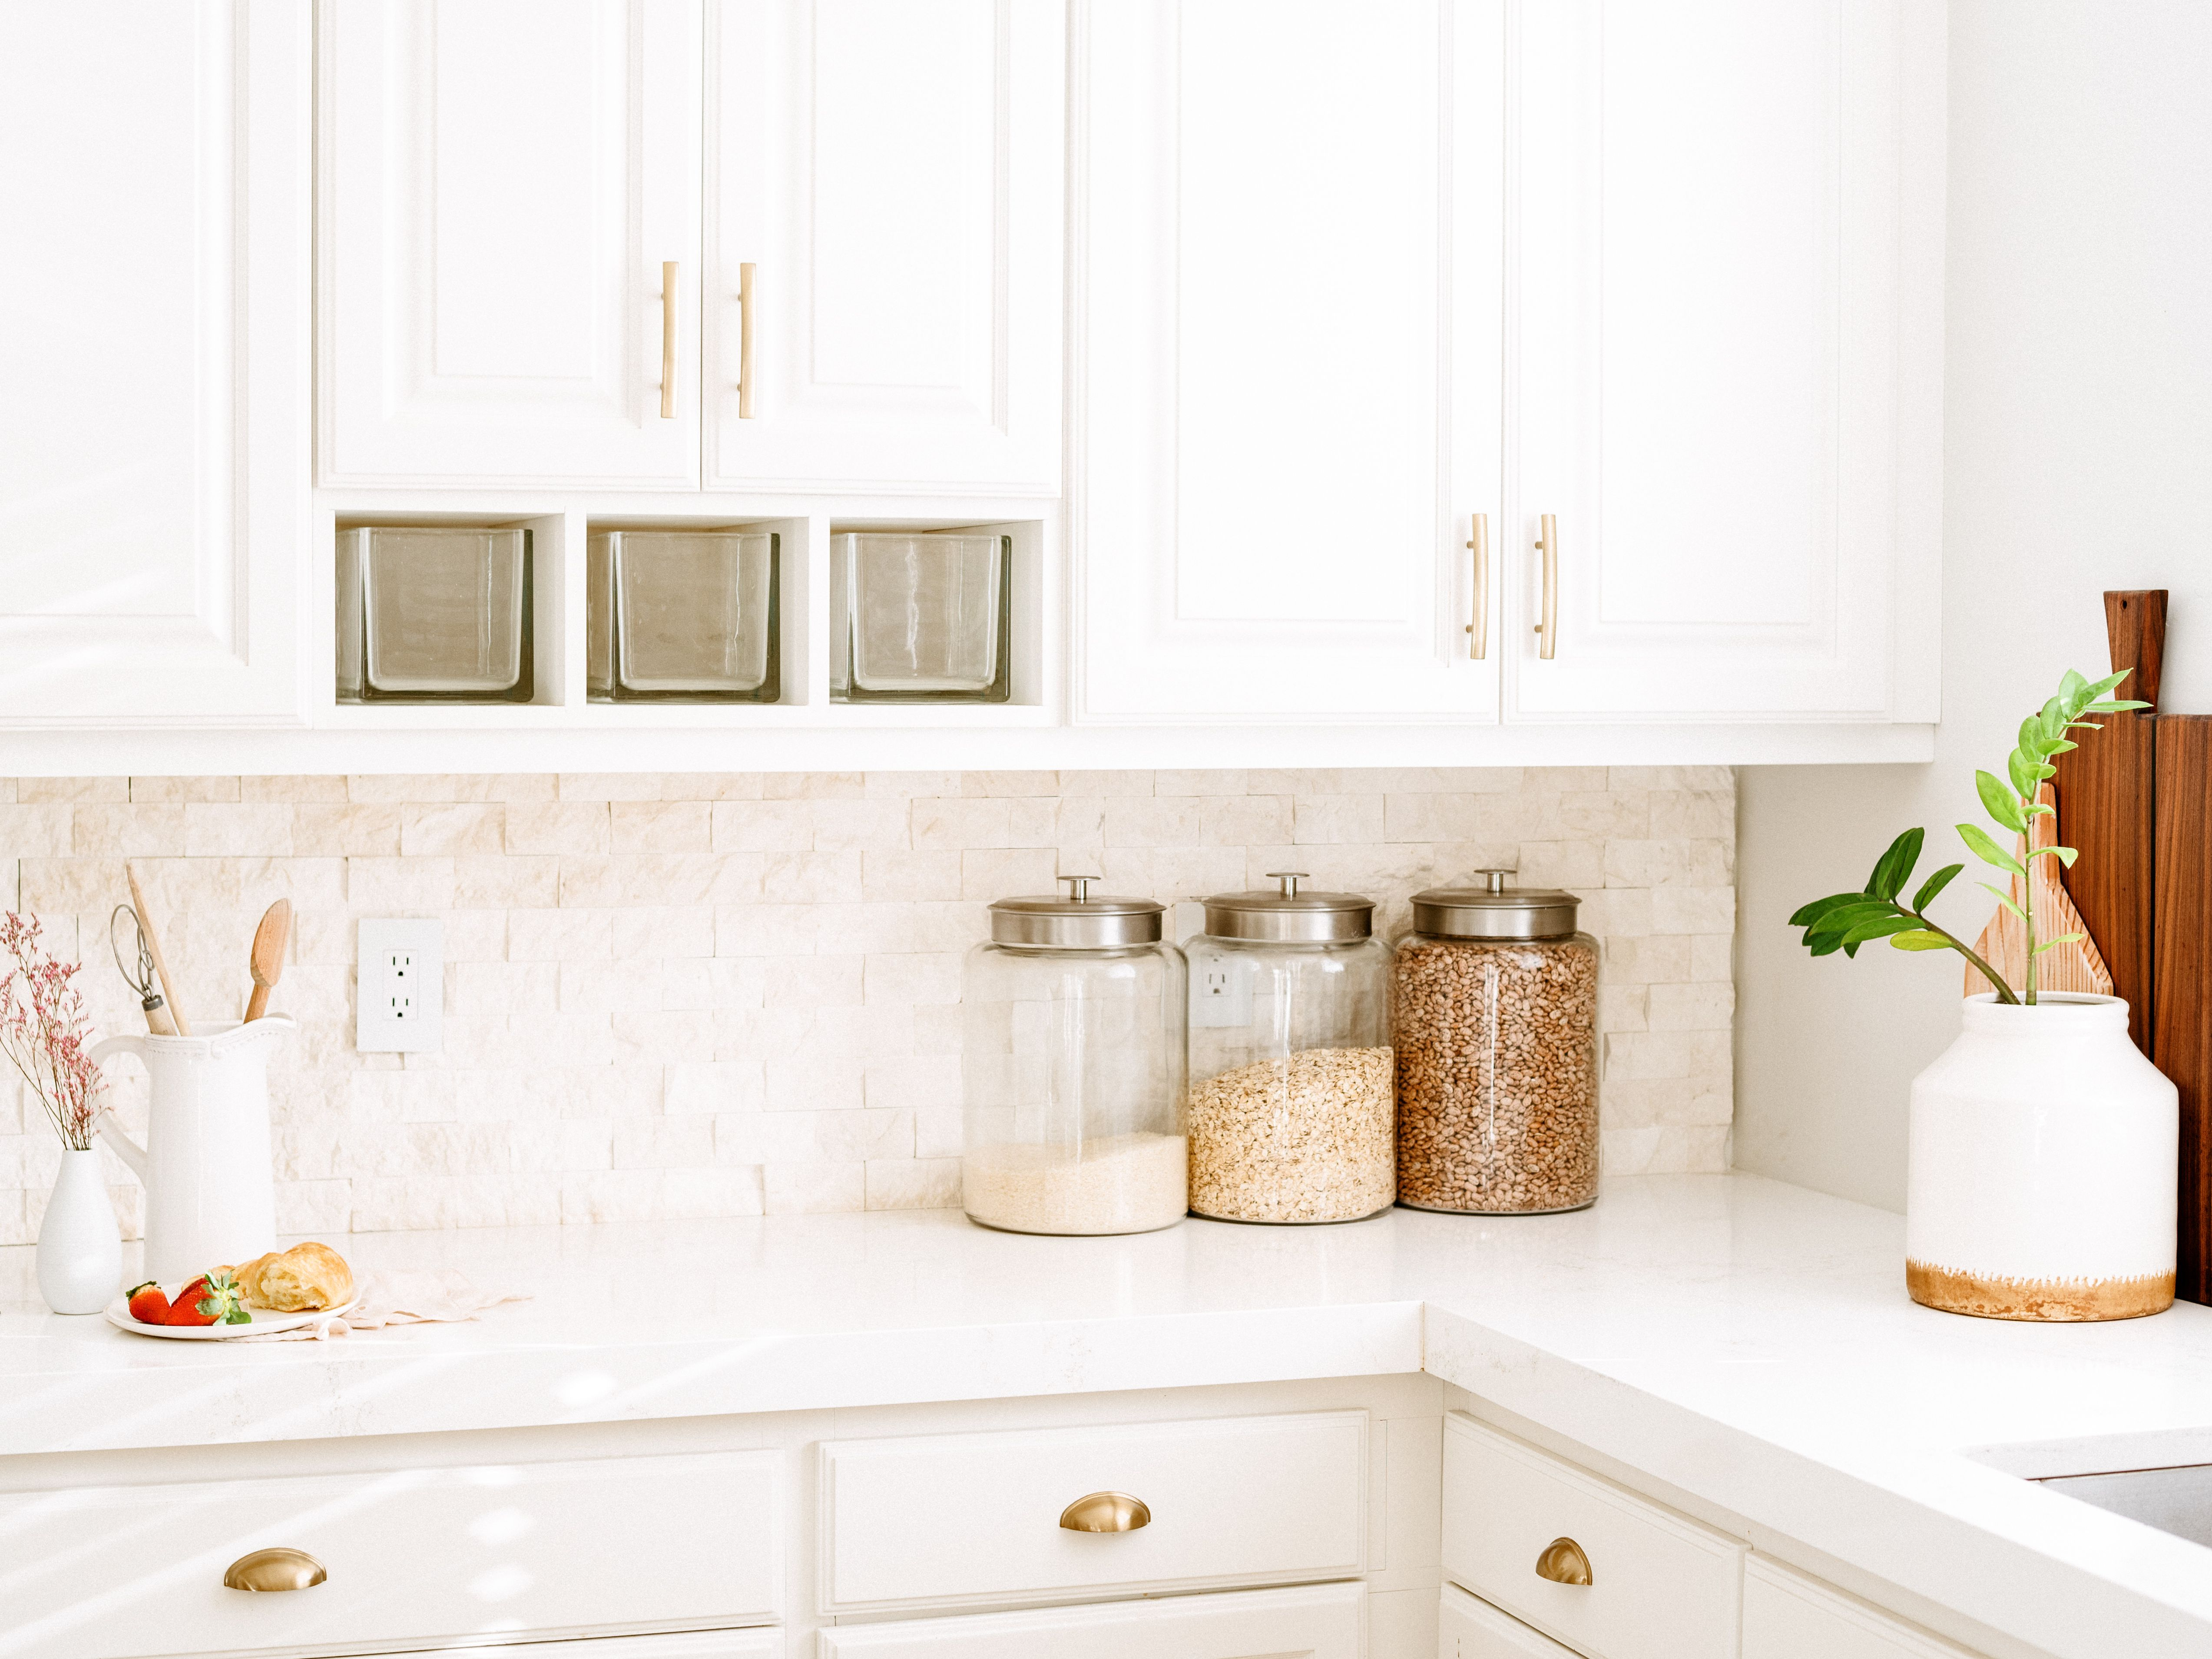 What To Store On The Counter In A Kitchen And What Not To